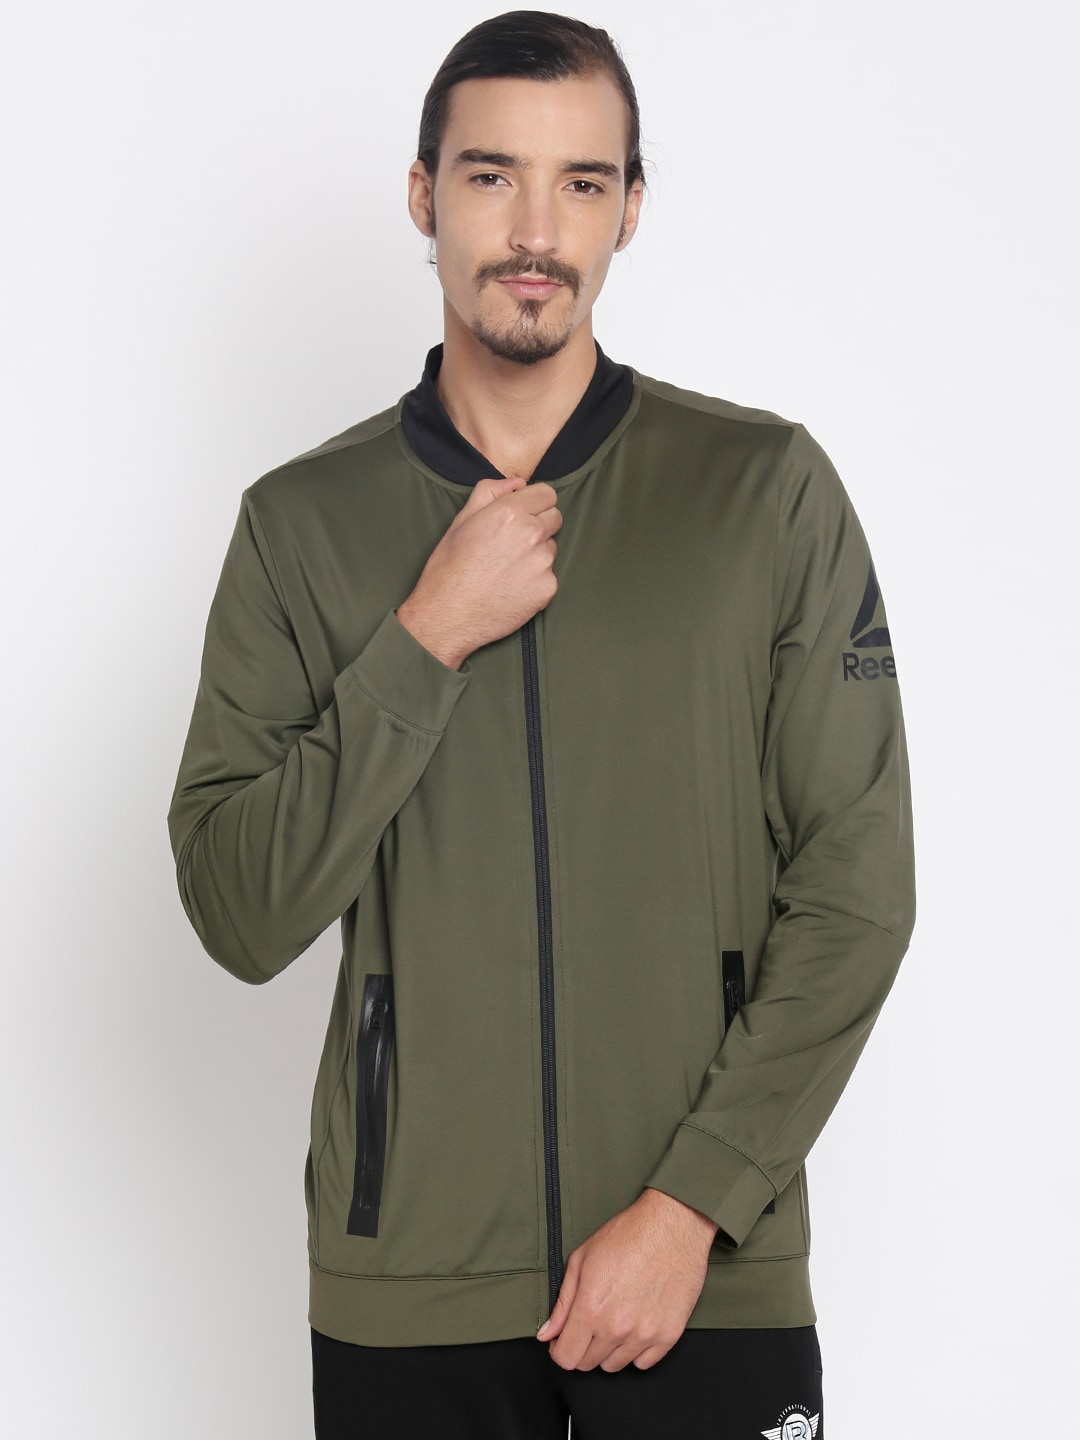 edc17cdd059 Reebok Men Jackets - Buy Reebok Men Jackets online in India